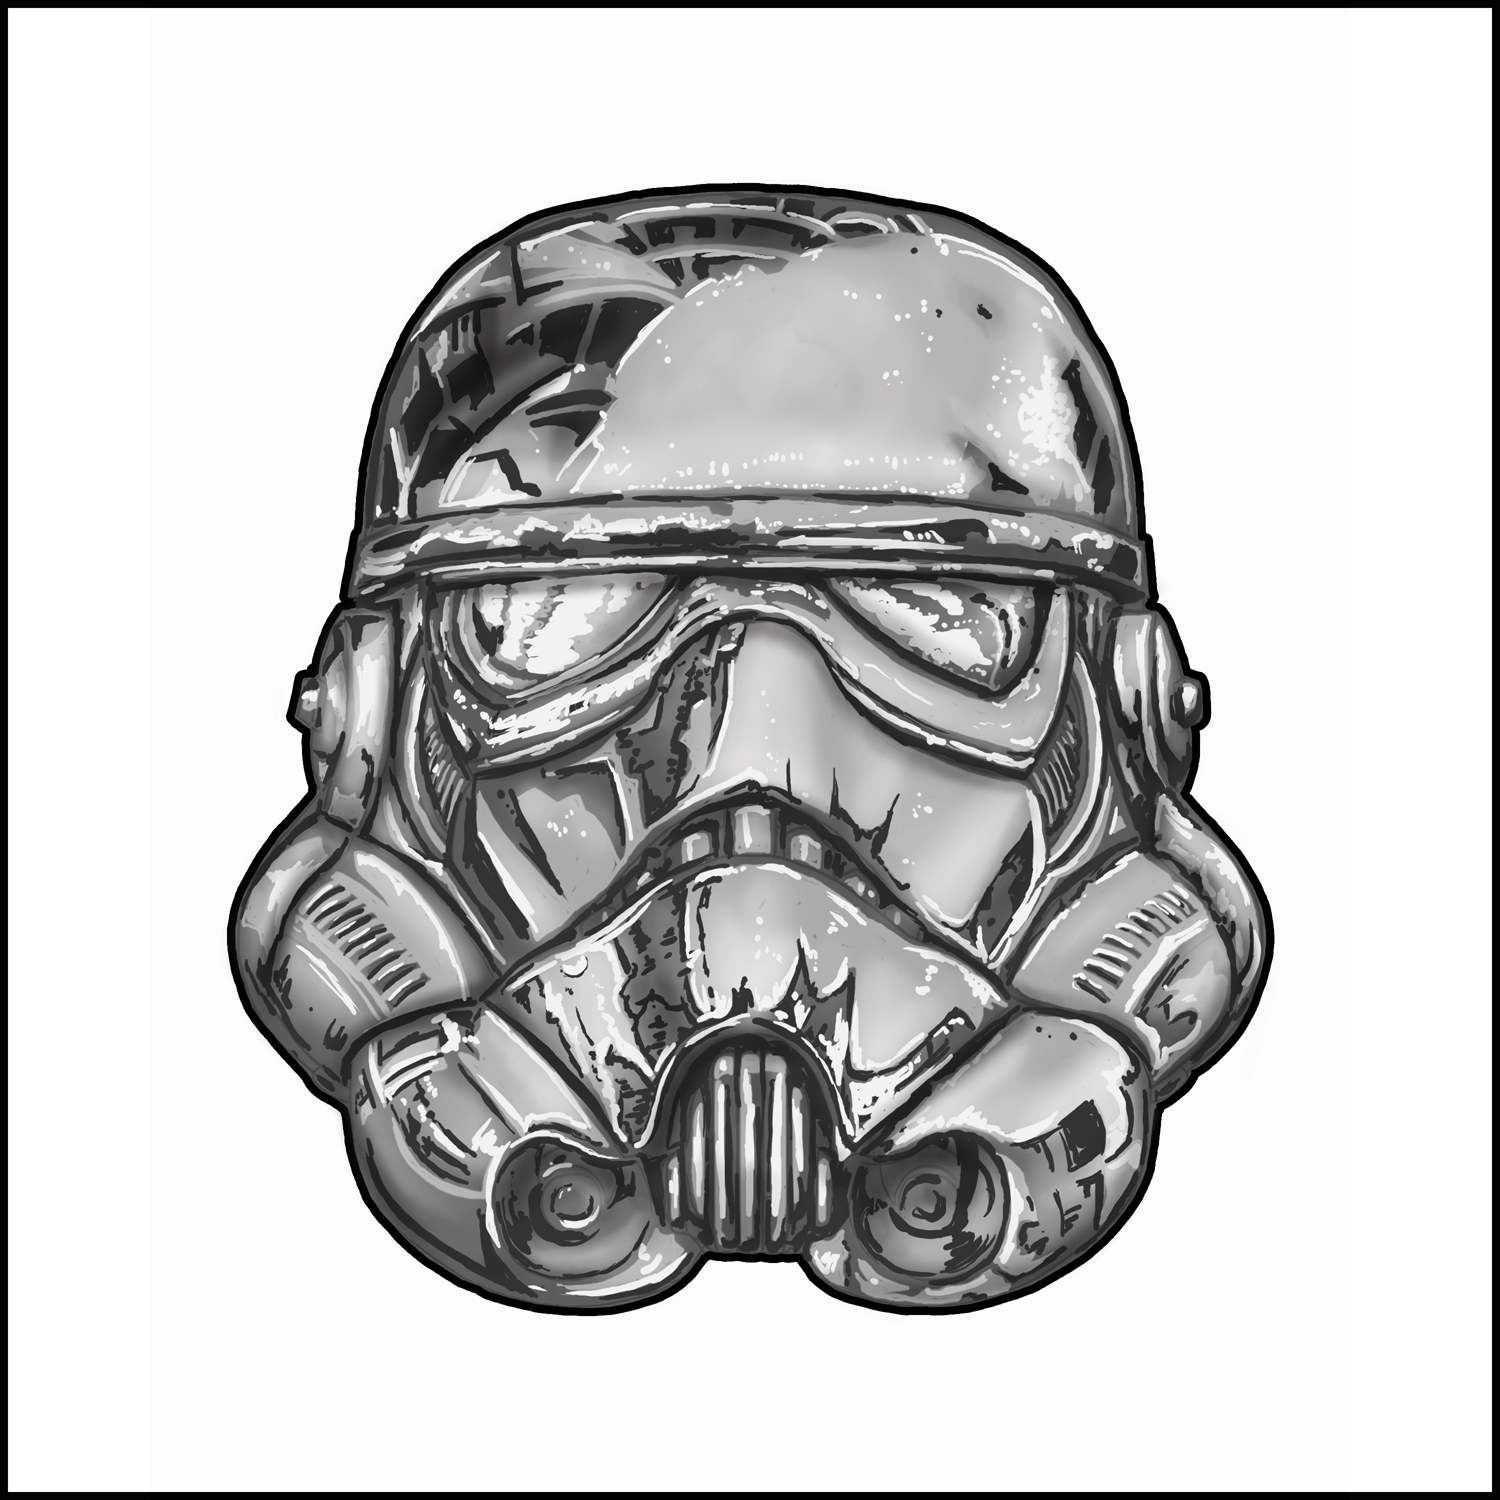 1500x1500 Themes Stormtrooper Helmet Drawing Also Stormtrooper Helmet Line